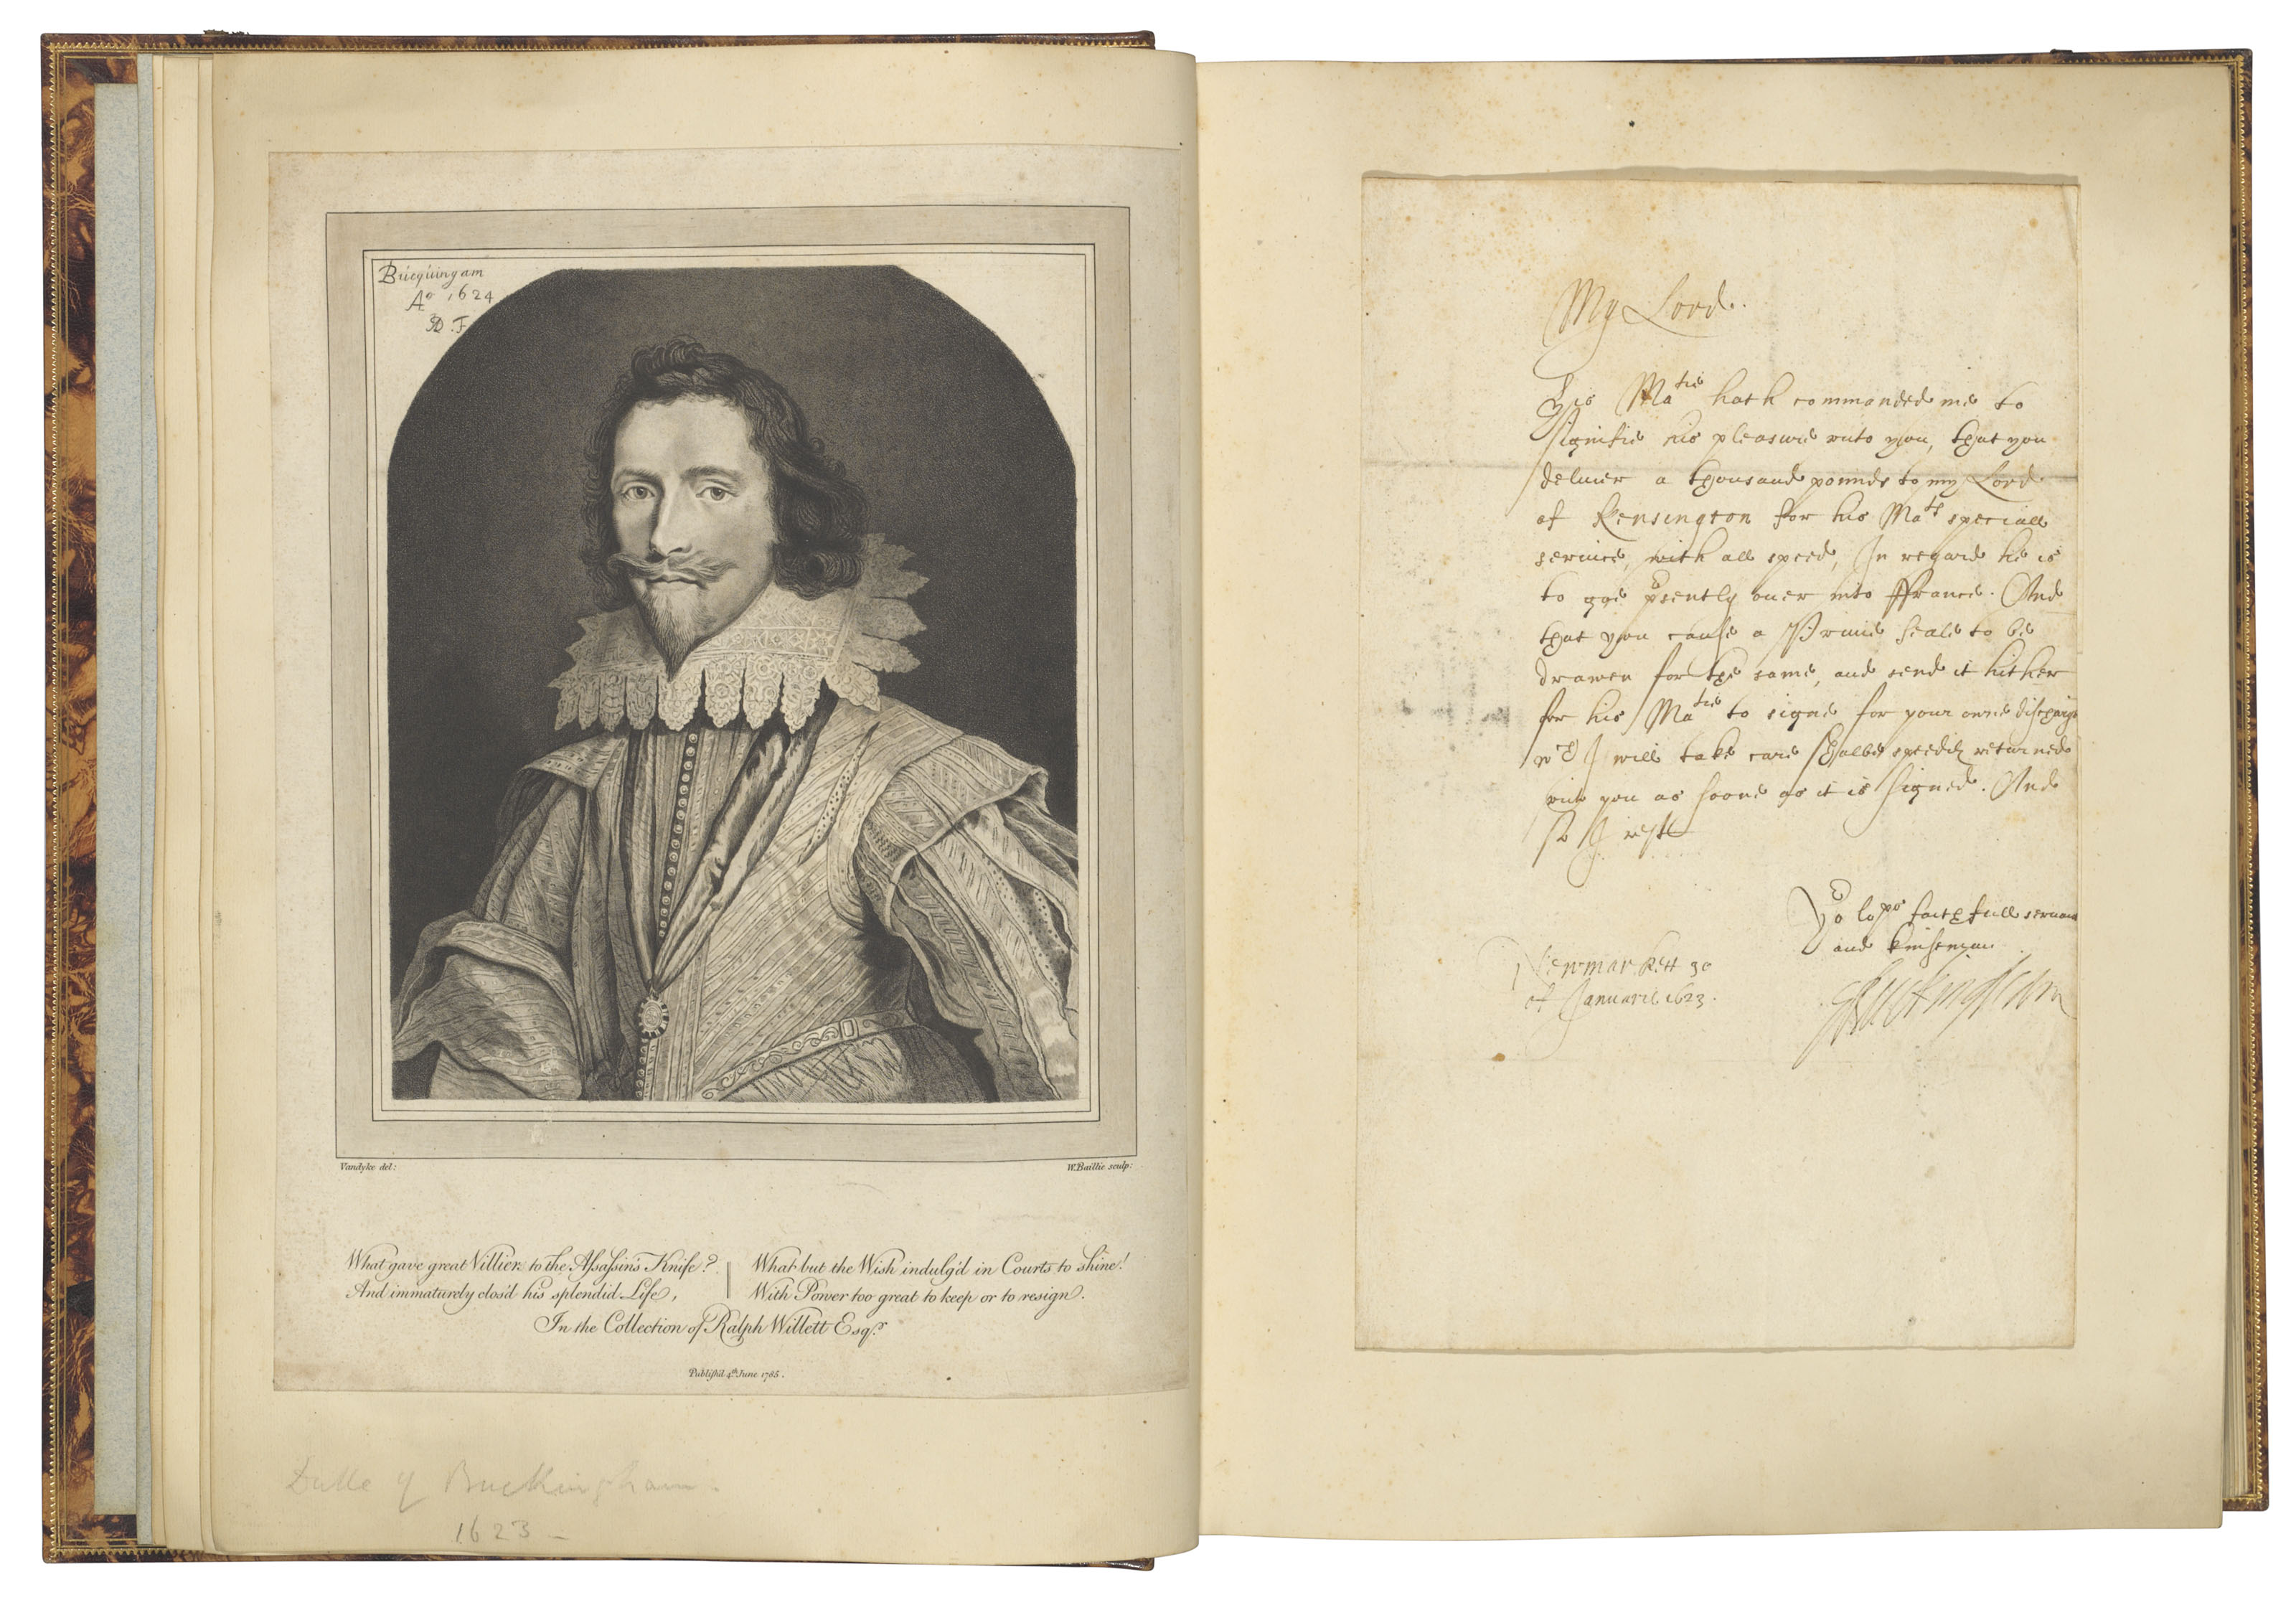 AUTOGRAPH COLLECTION. A substantial collection of autograph letters and documents, comprising: